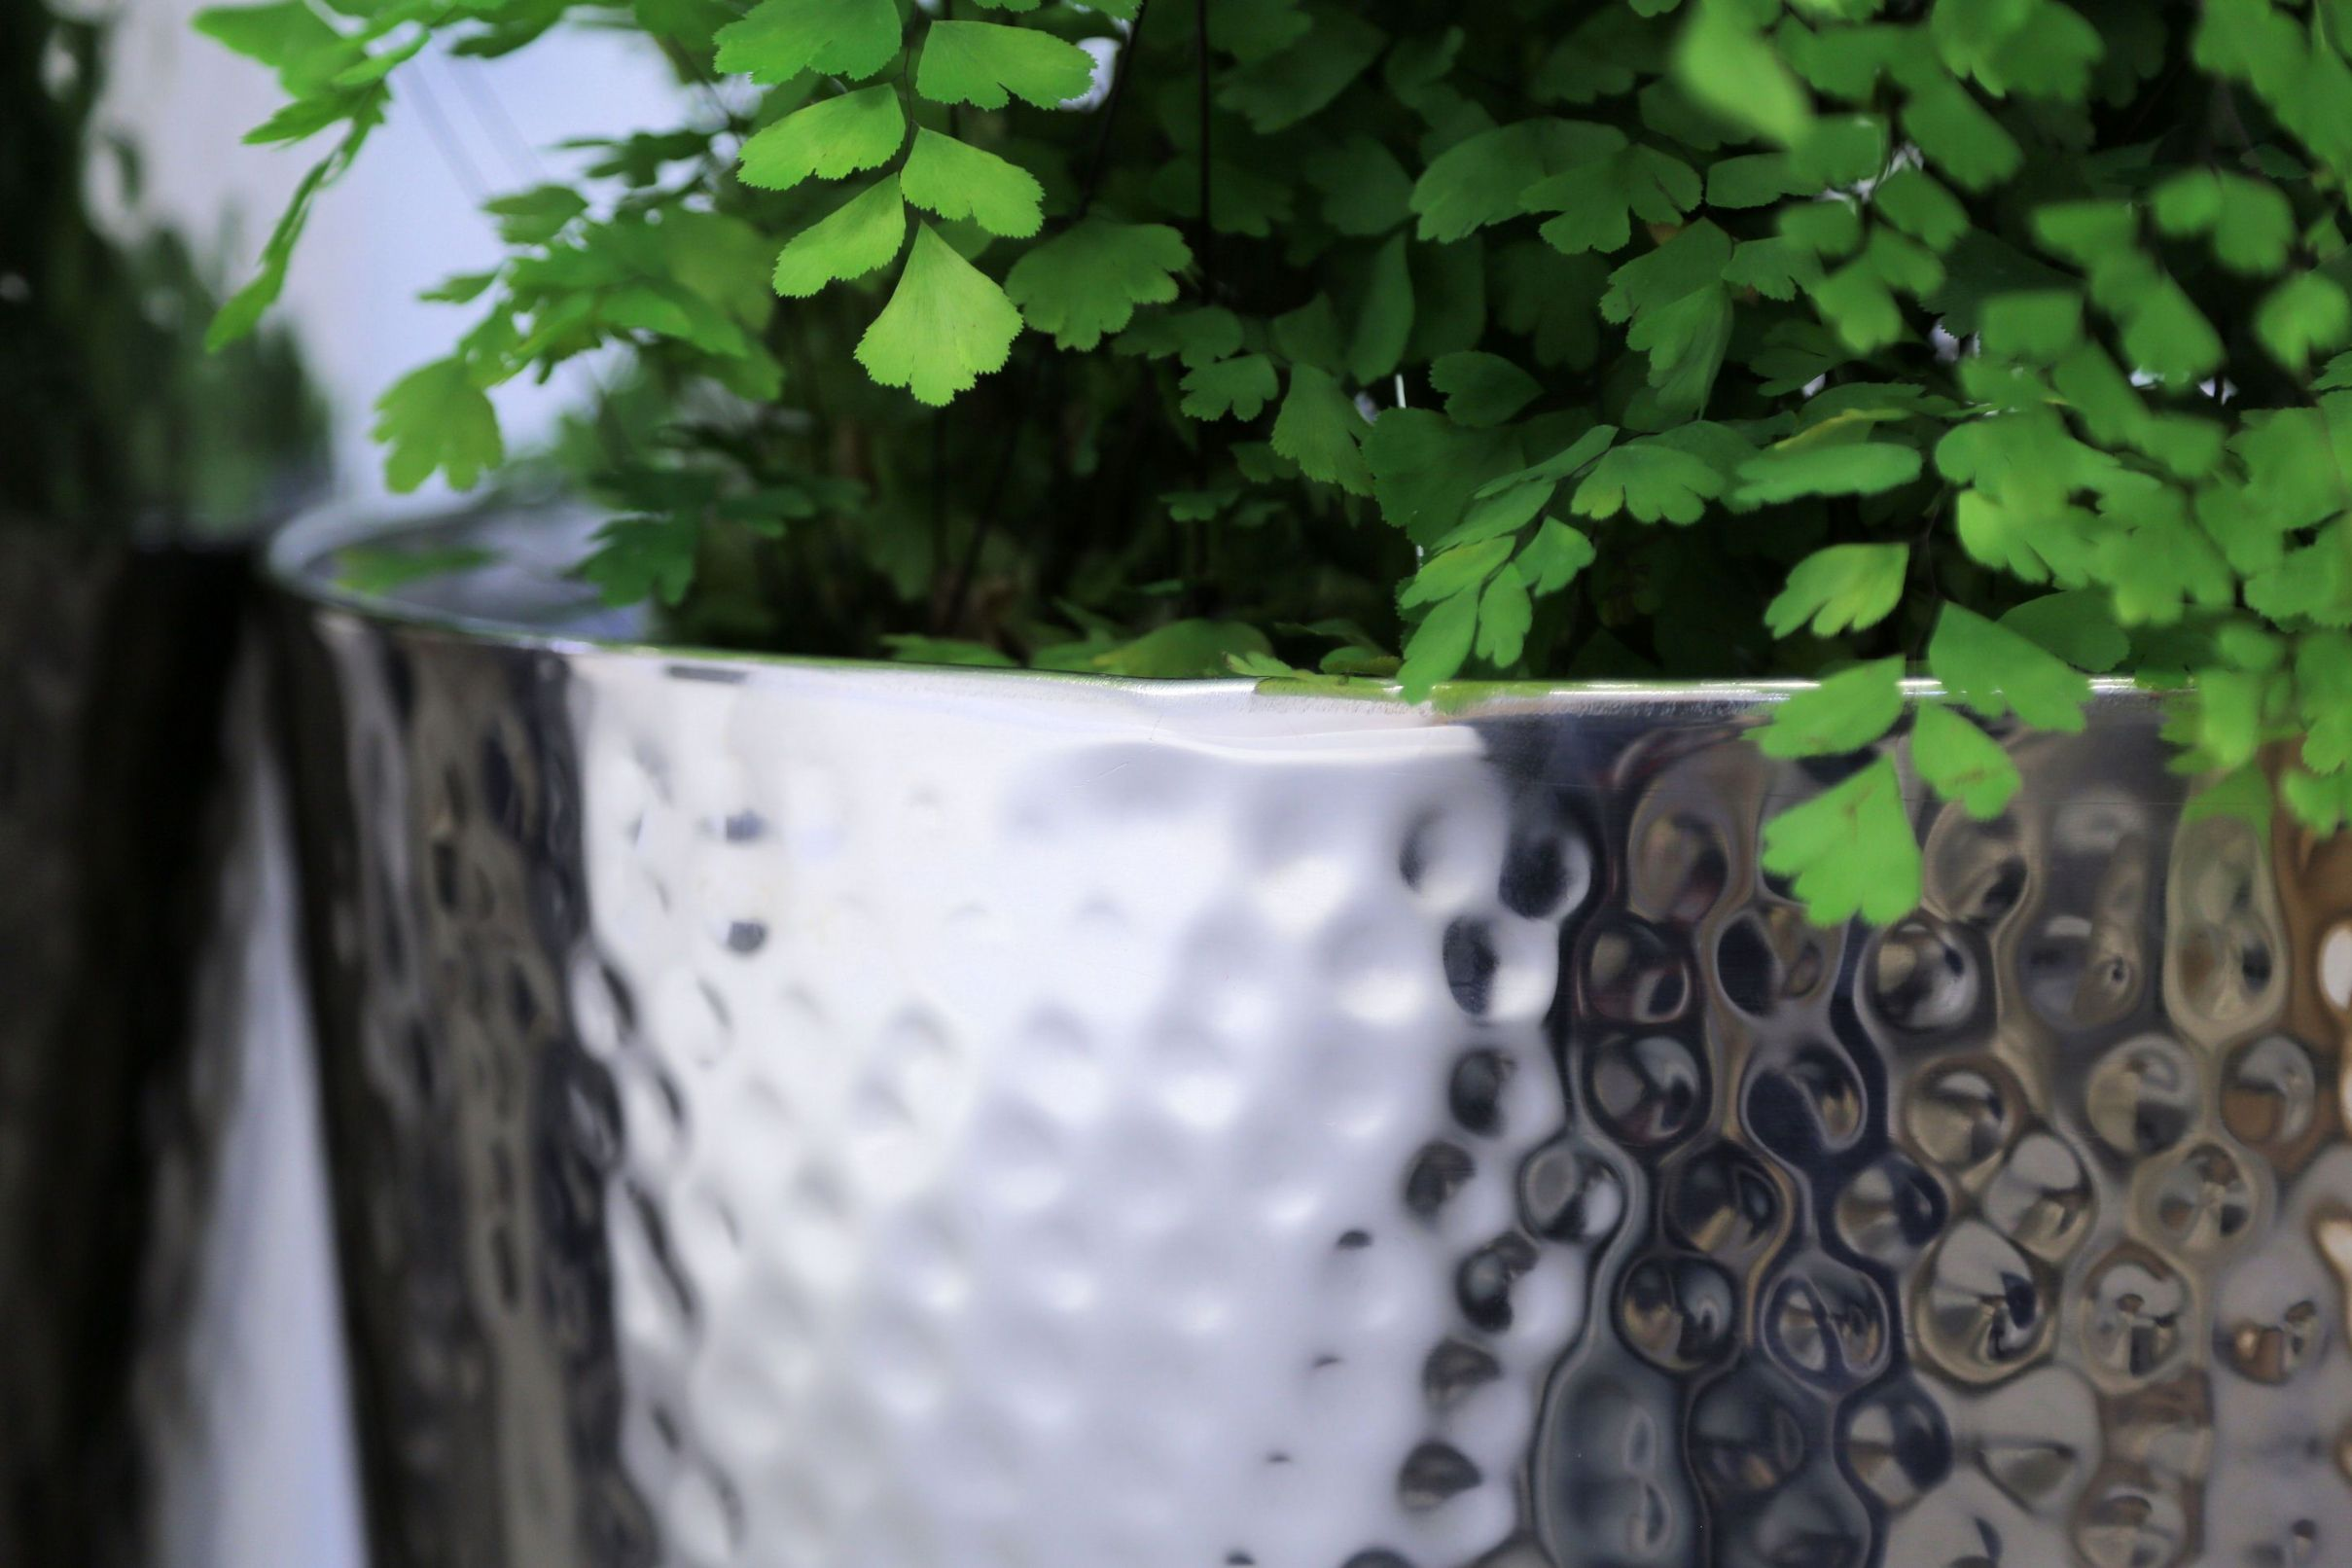 Hammered Stainless Steel Tapered Round Planters From potstore